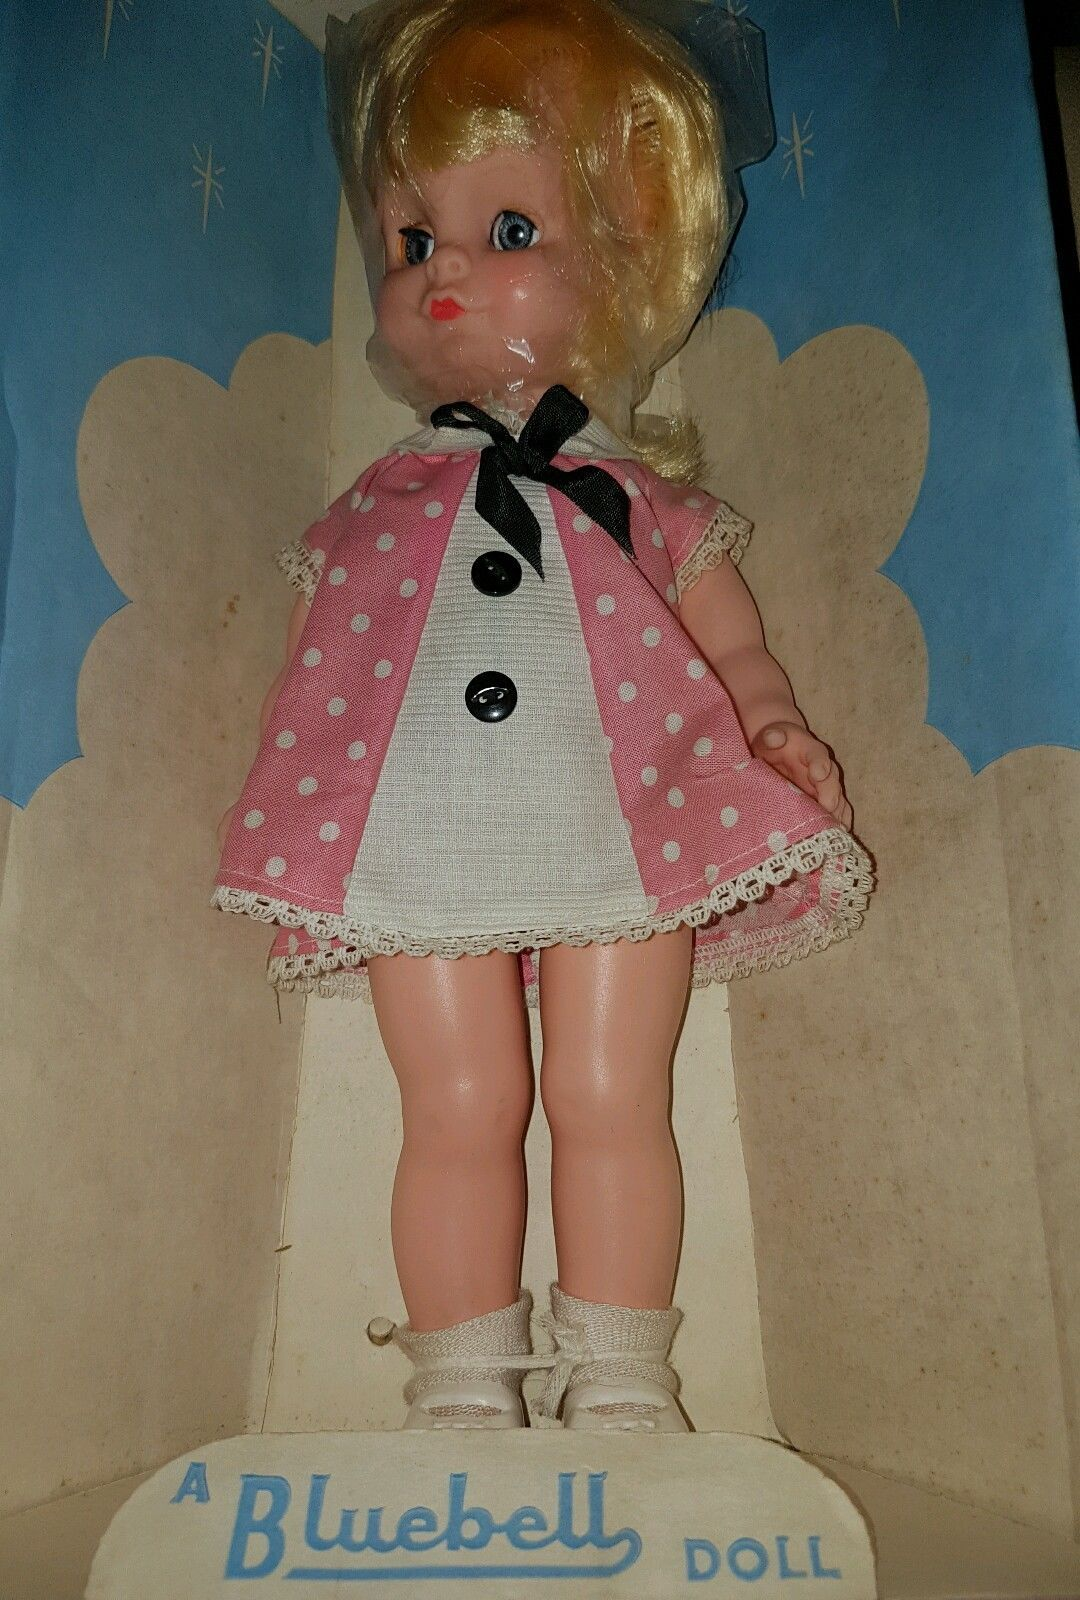 Rare Boxed 1960s / 1970's Bluebell Doll Dolls, Vintage